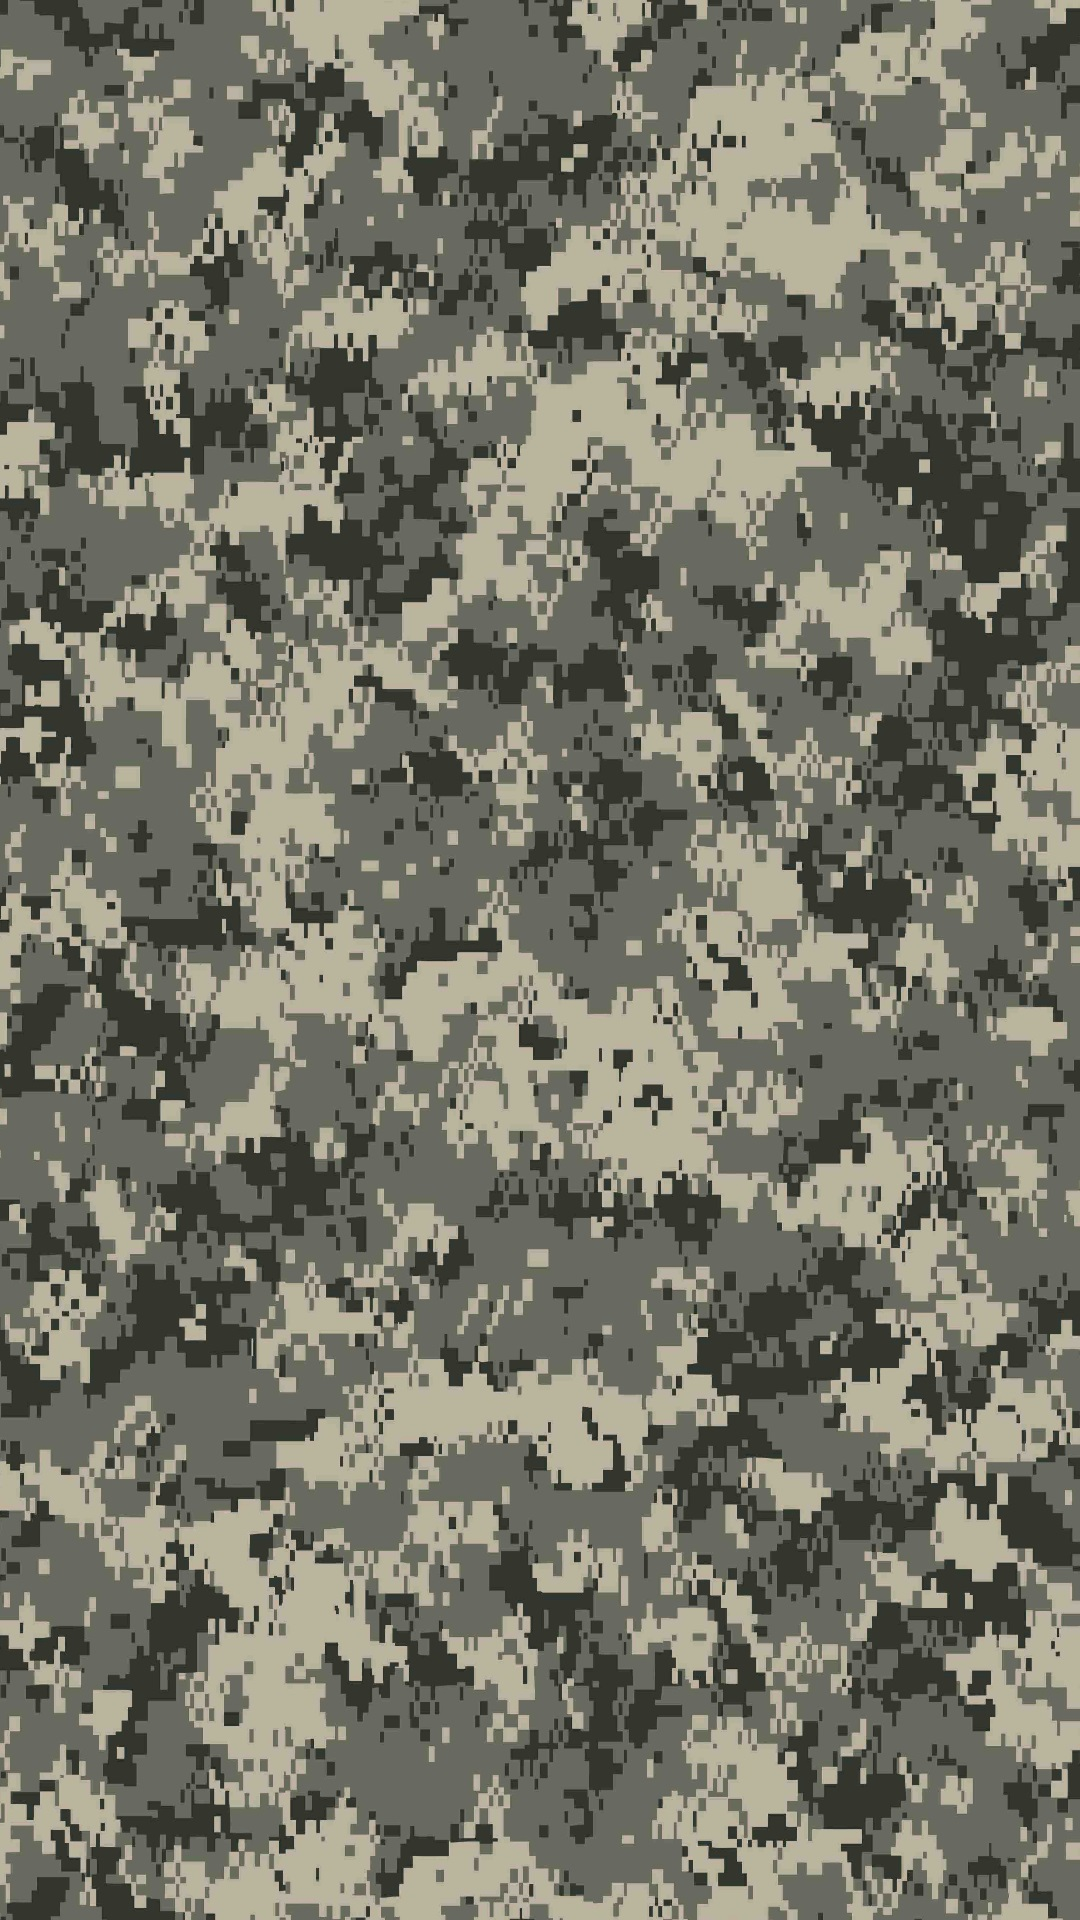 Camo Iphone Wallpapers Free Download - Camouflage Wallpapers 4k - HD Wallpaper